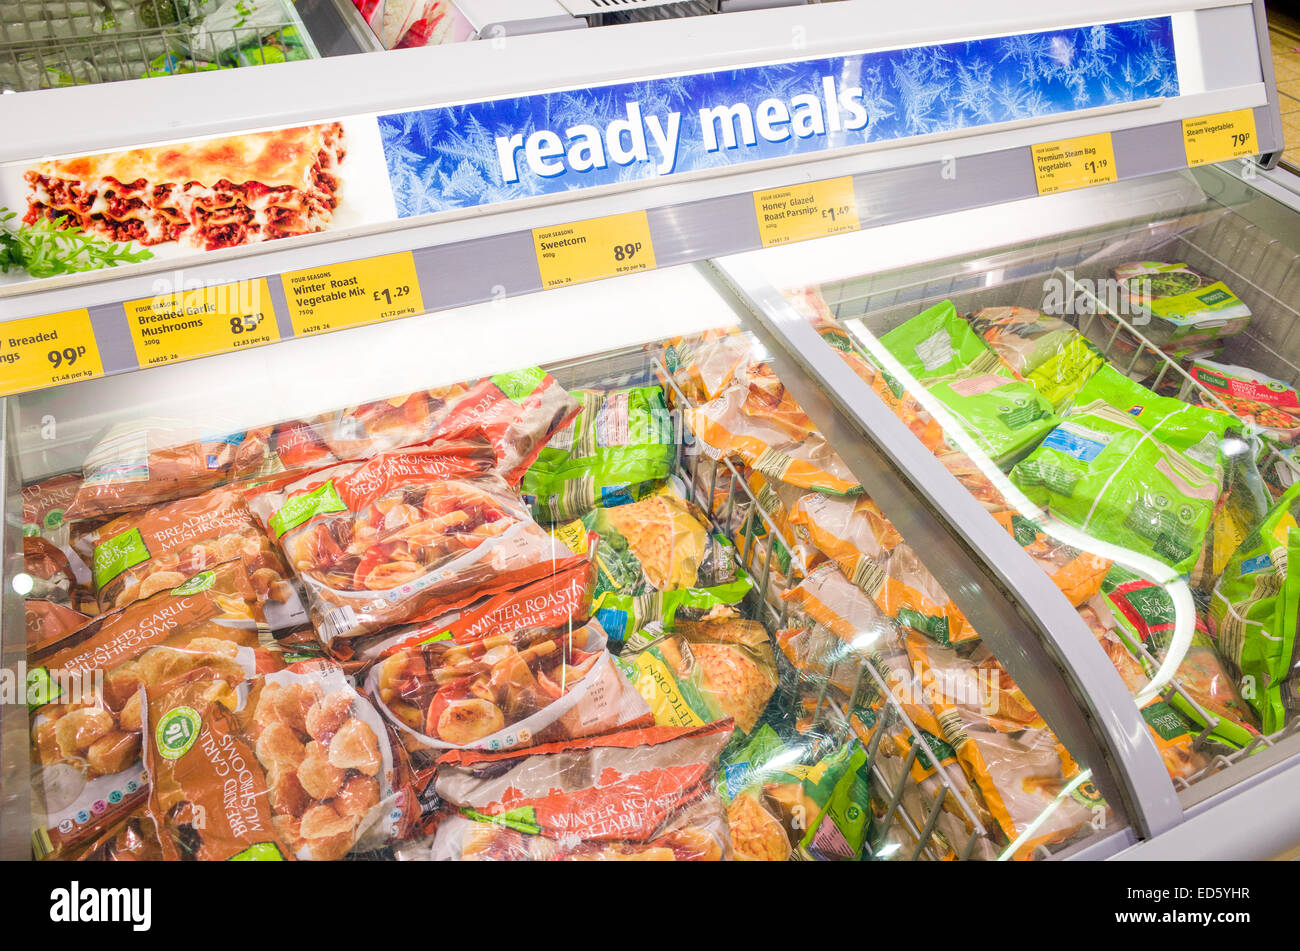 https www alamy com stock photo ready meals in the frozen food section at aldi supermarket england 76963427 html